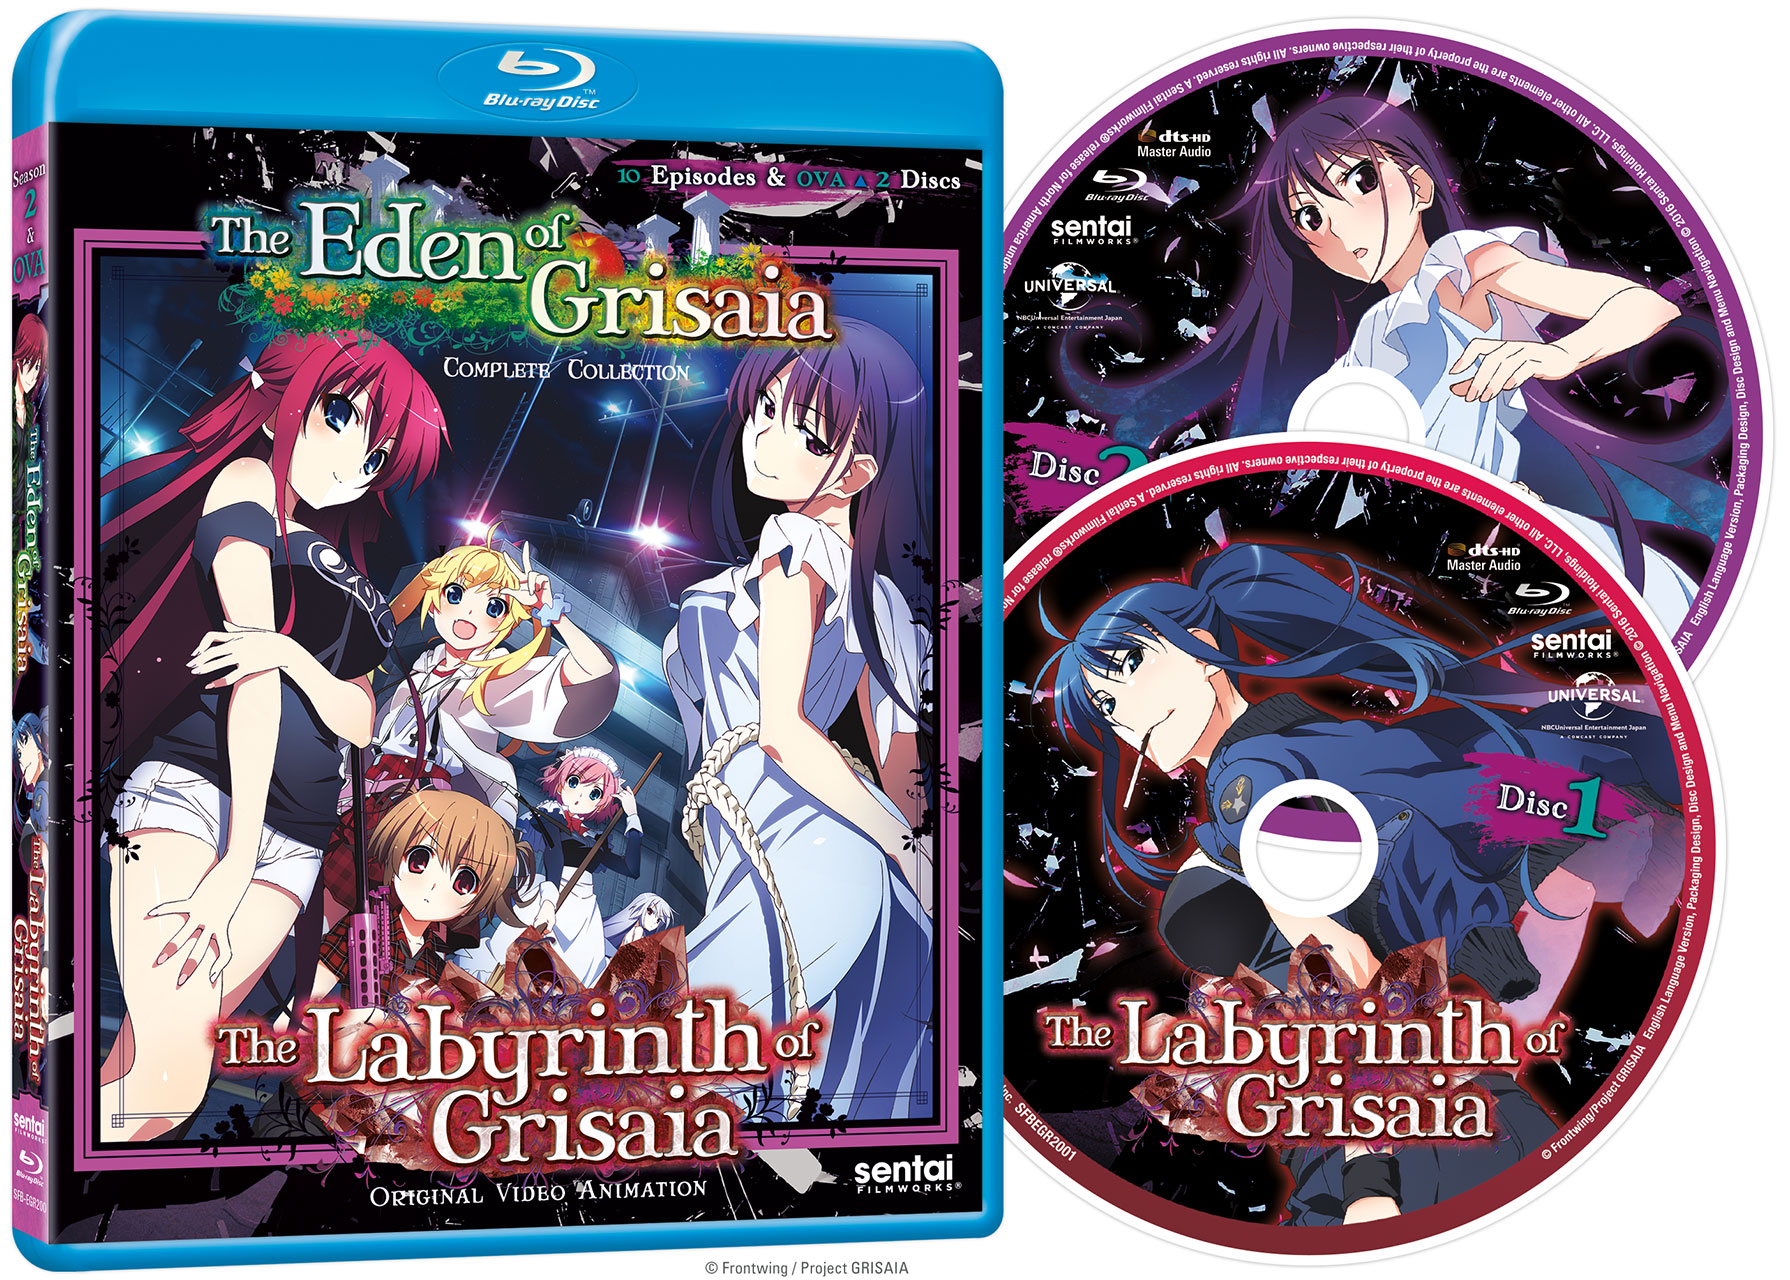 Labyrinth of Grisaia + Eden of Grisaia Blu-ray